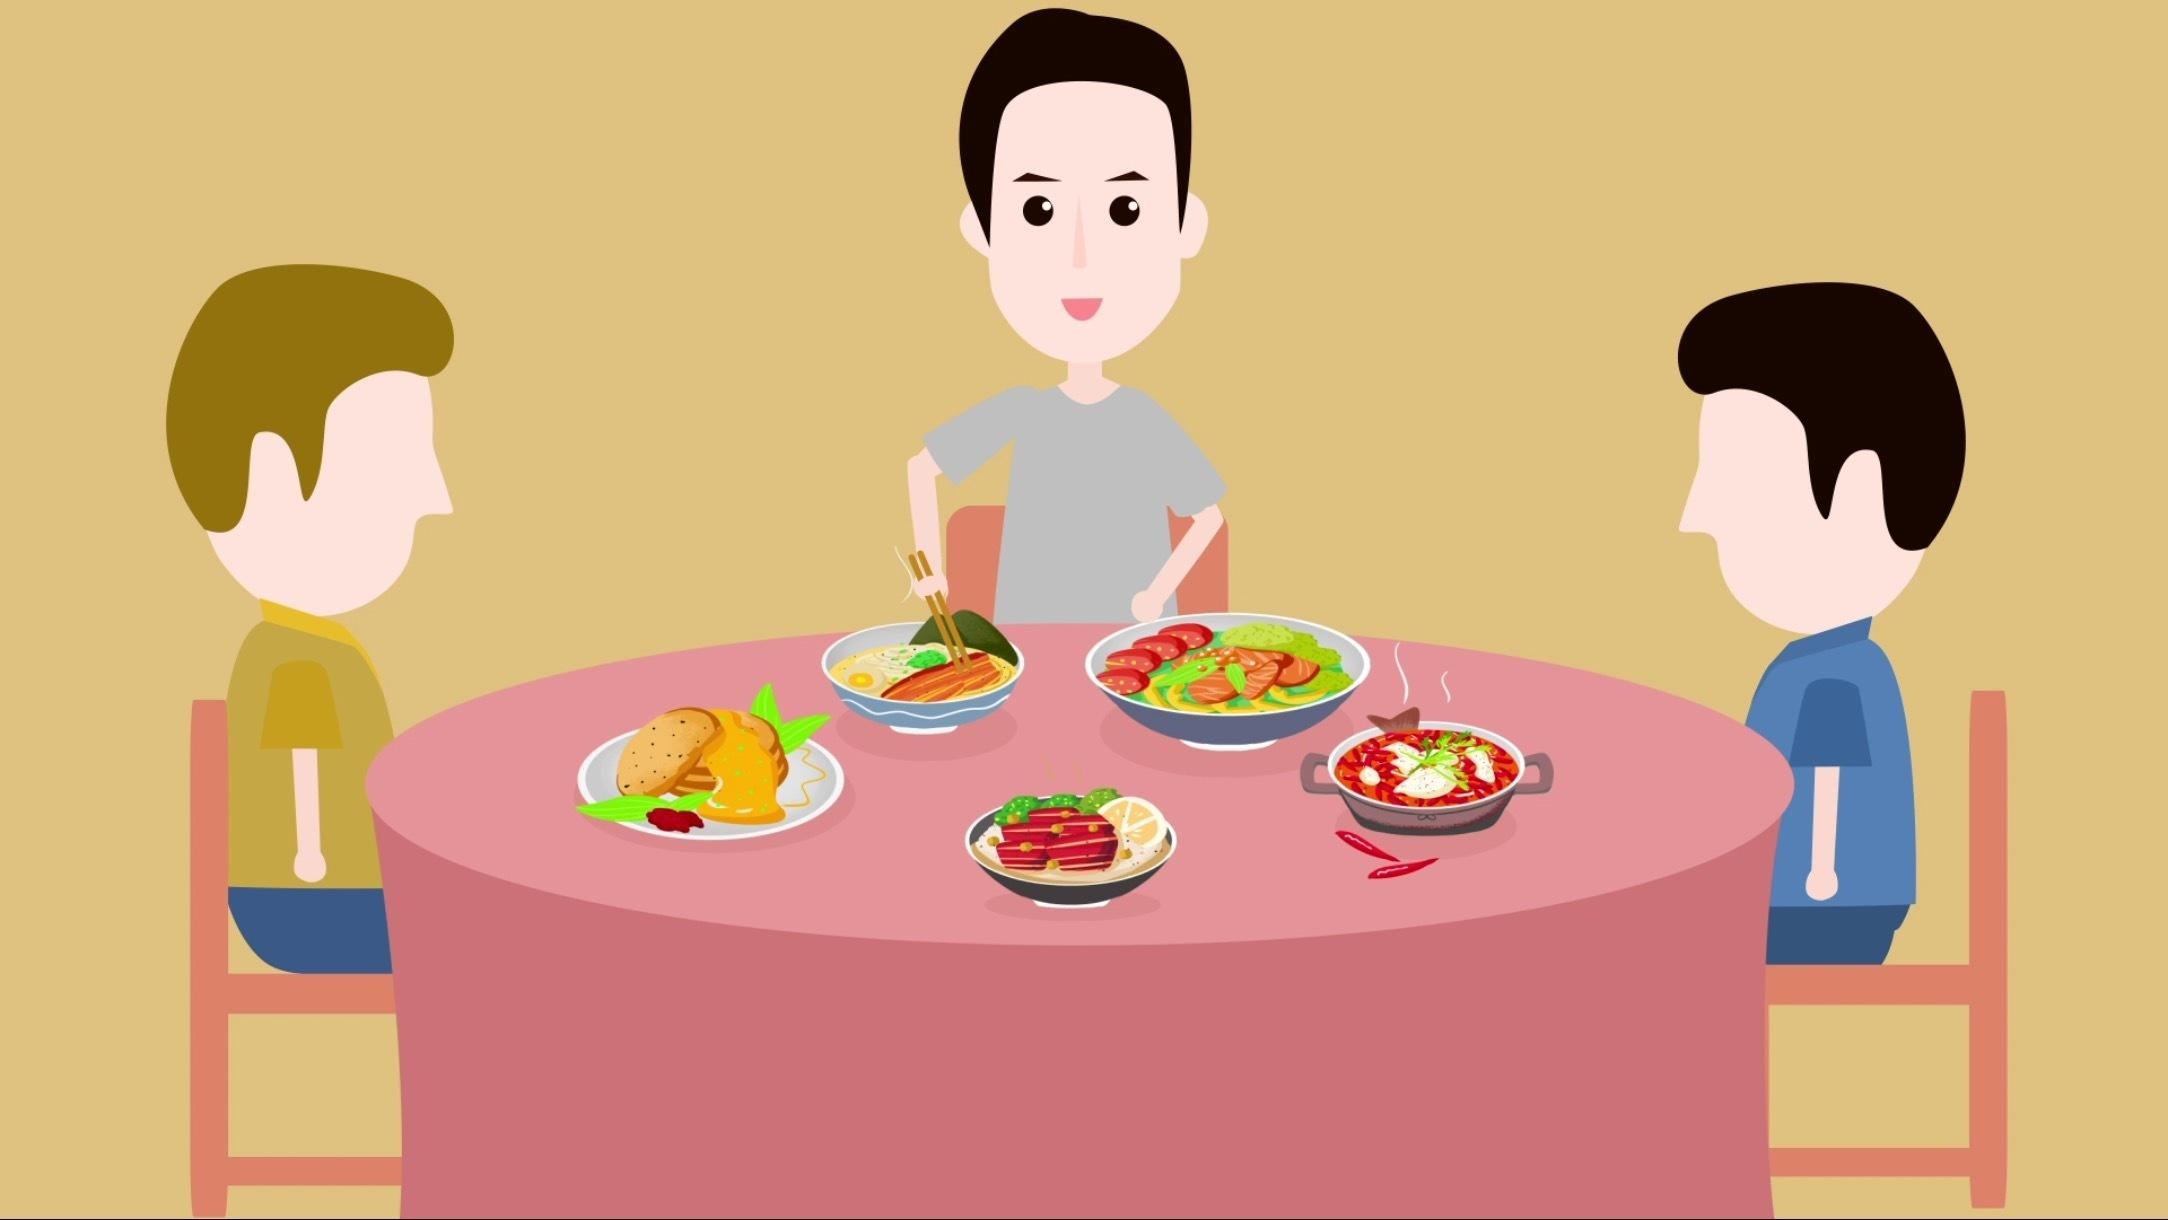 etiquette of eating meal